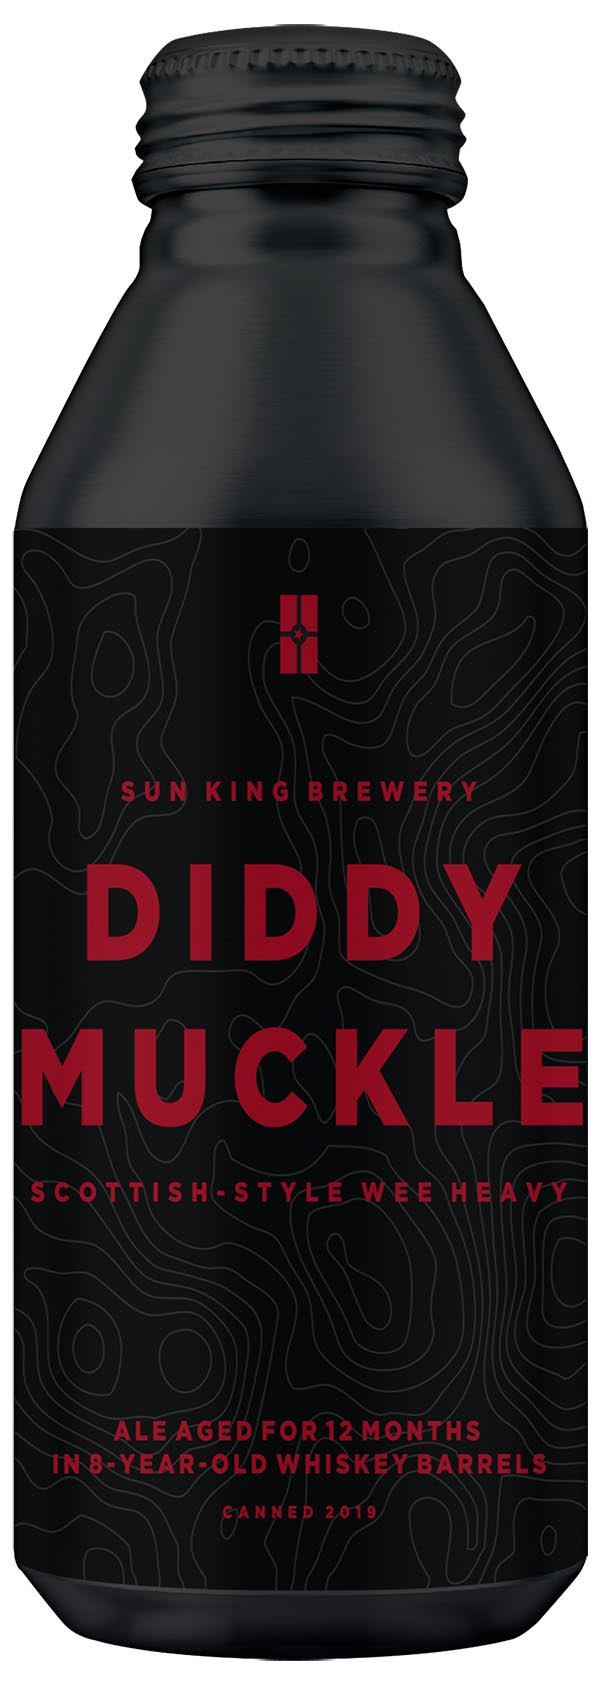 Diddy Muckle Whiskey Barrel-Aged Scottish Style Wee Heavy